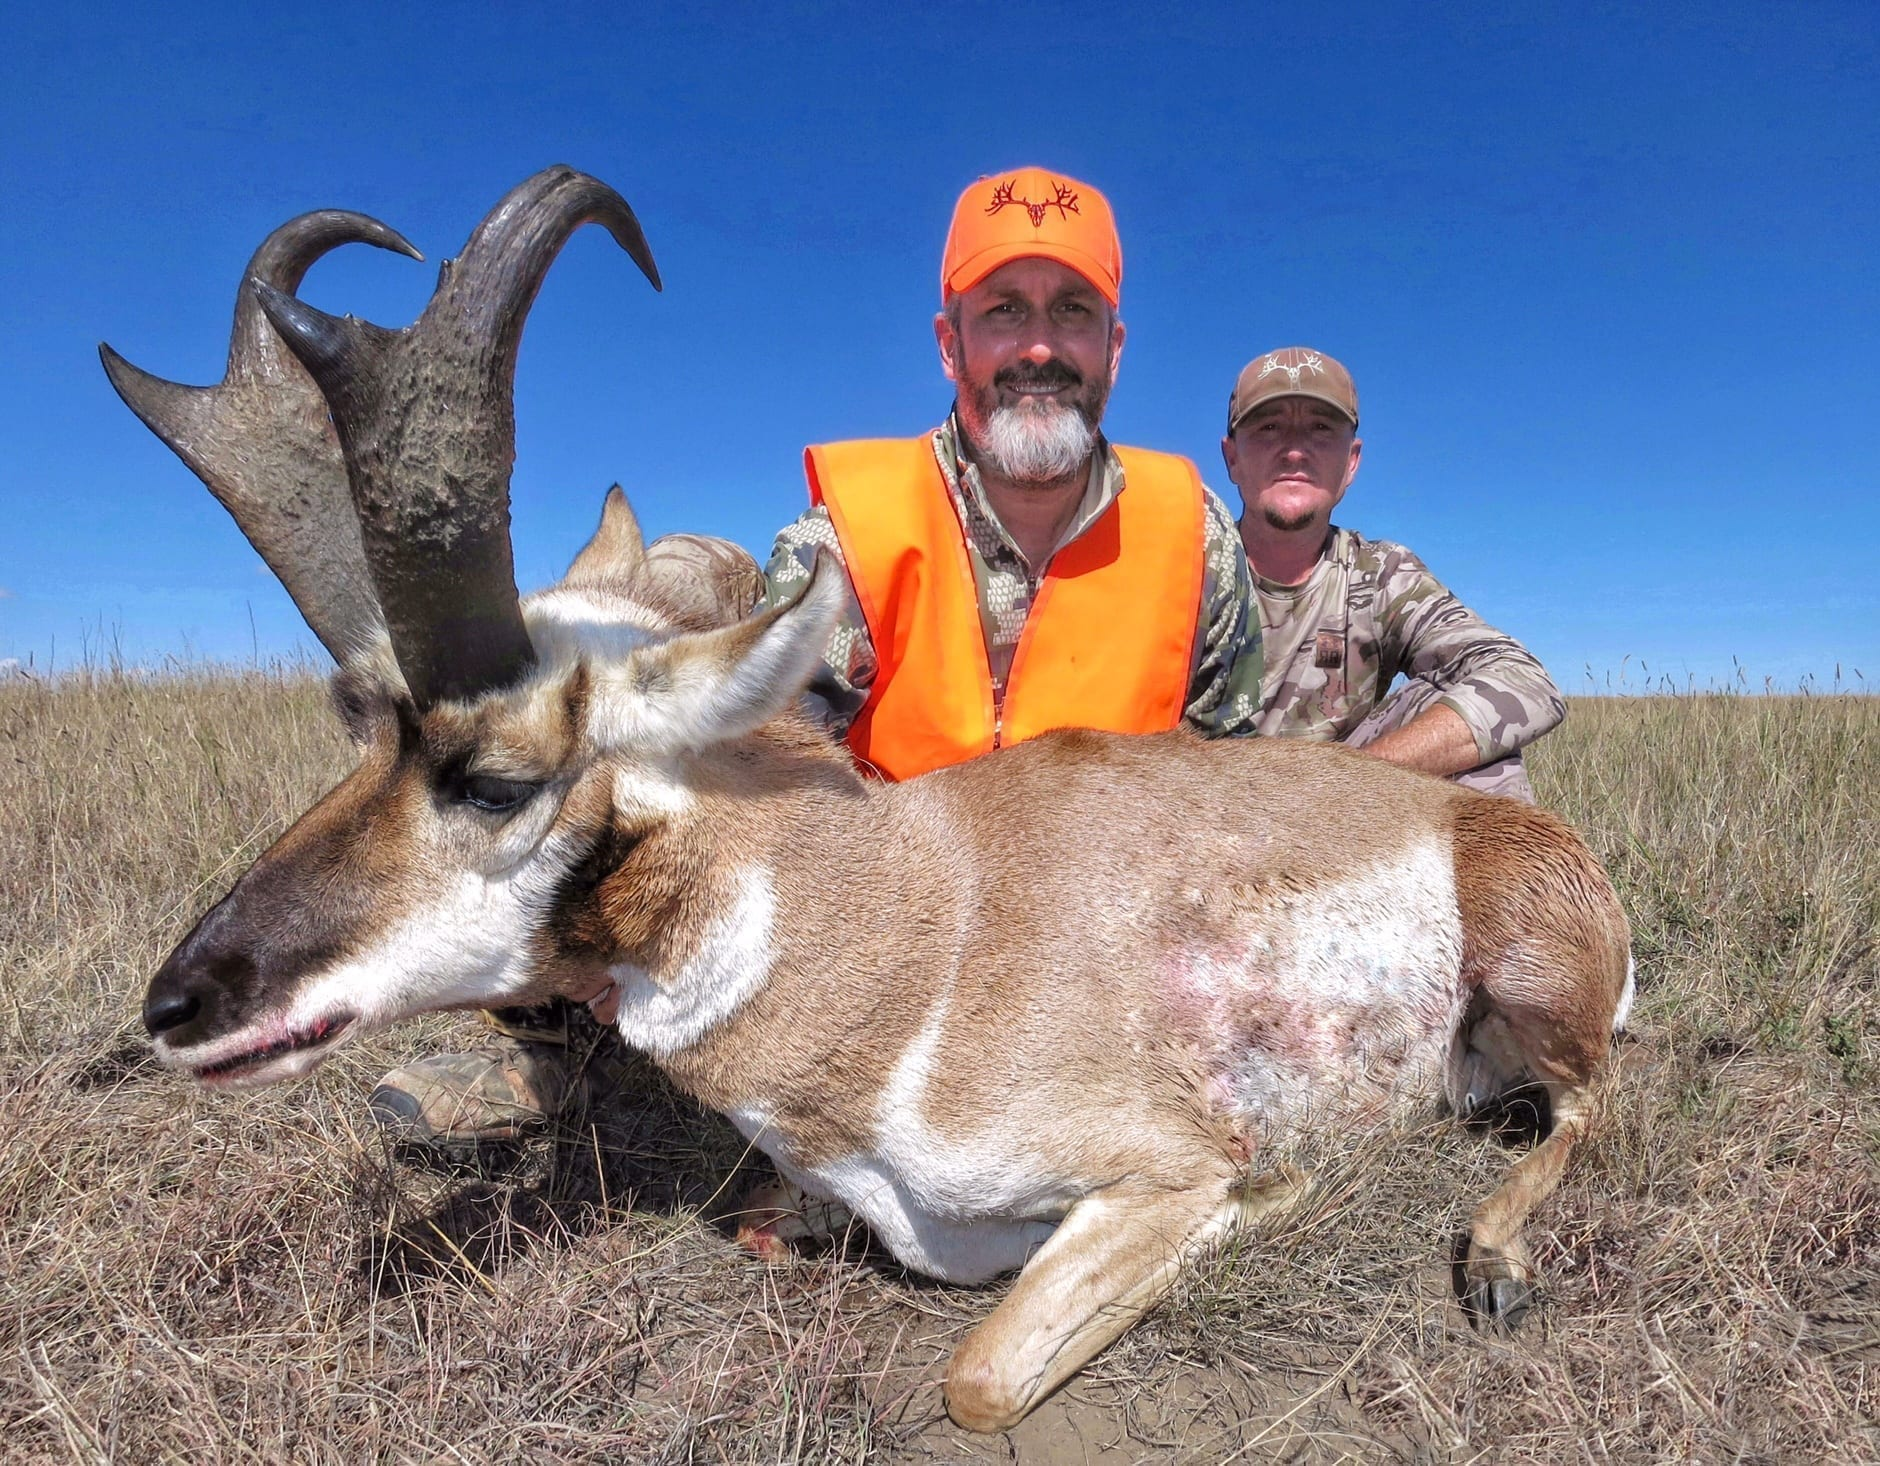 When most hunters think antelope hunts Colorado usually isn't the first place to come to mind, but maybe it should be...